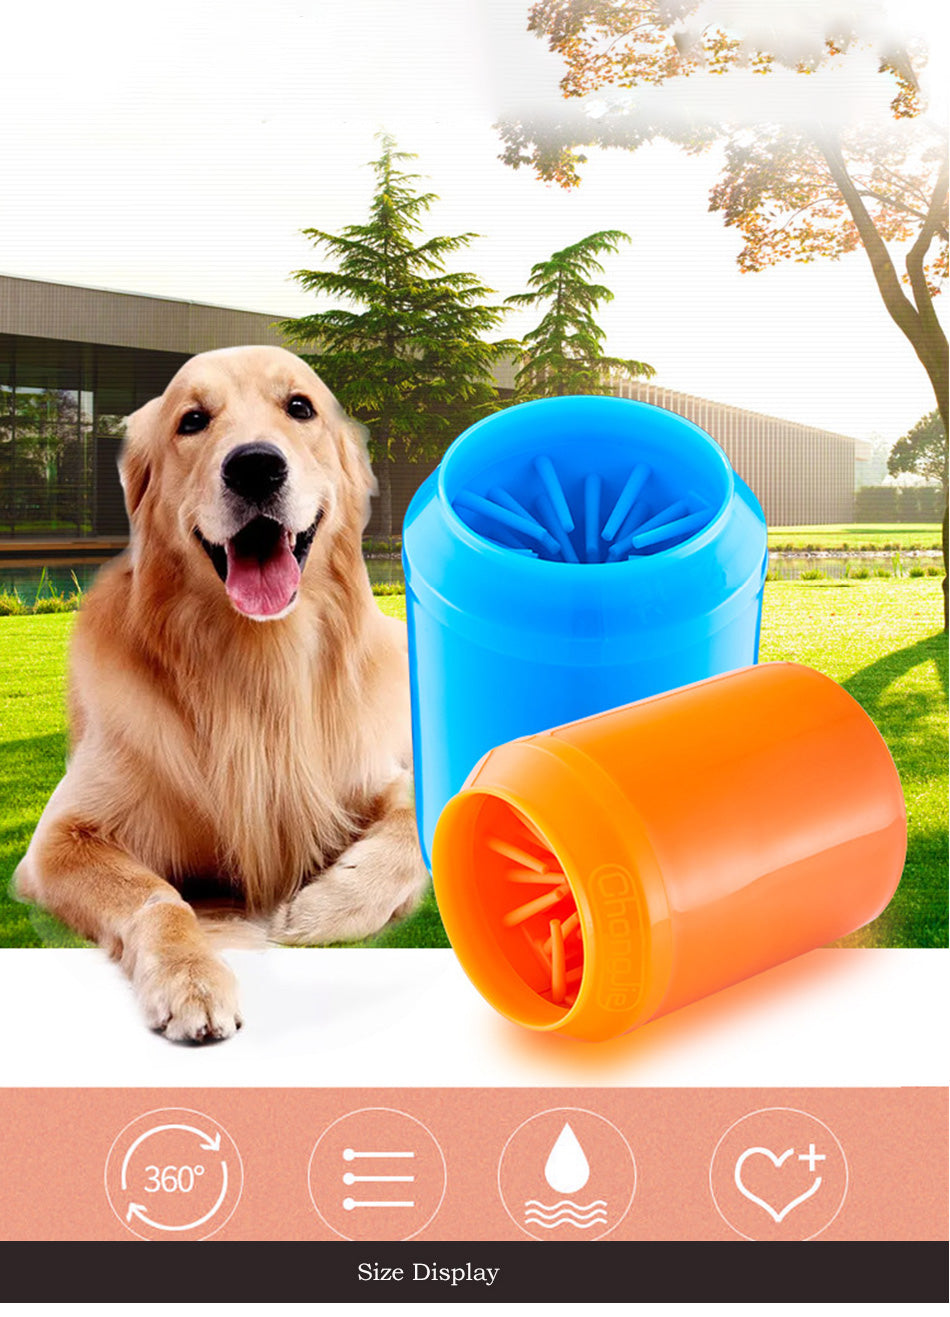 World's Most EffectivePet Paw Cleaner, Quickly Washer